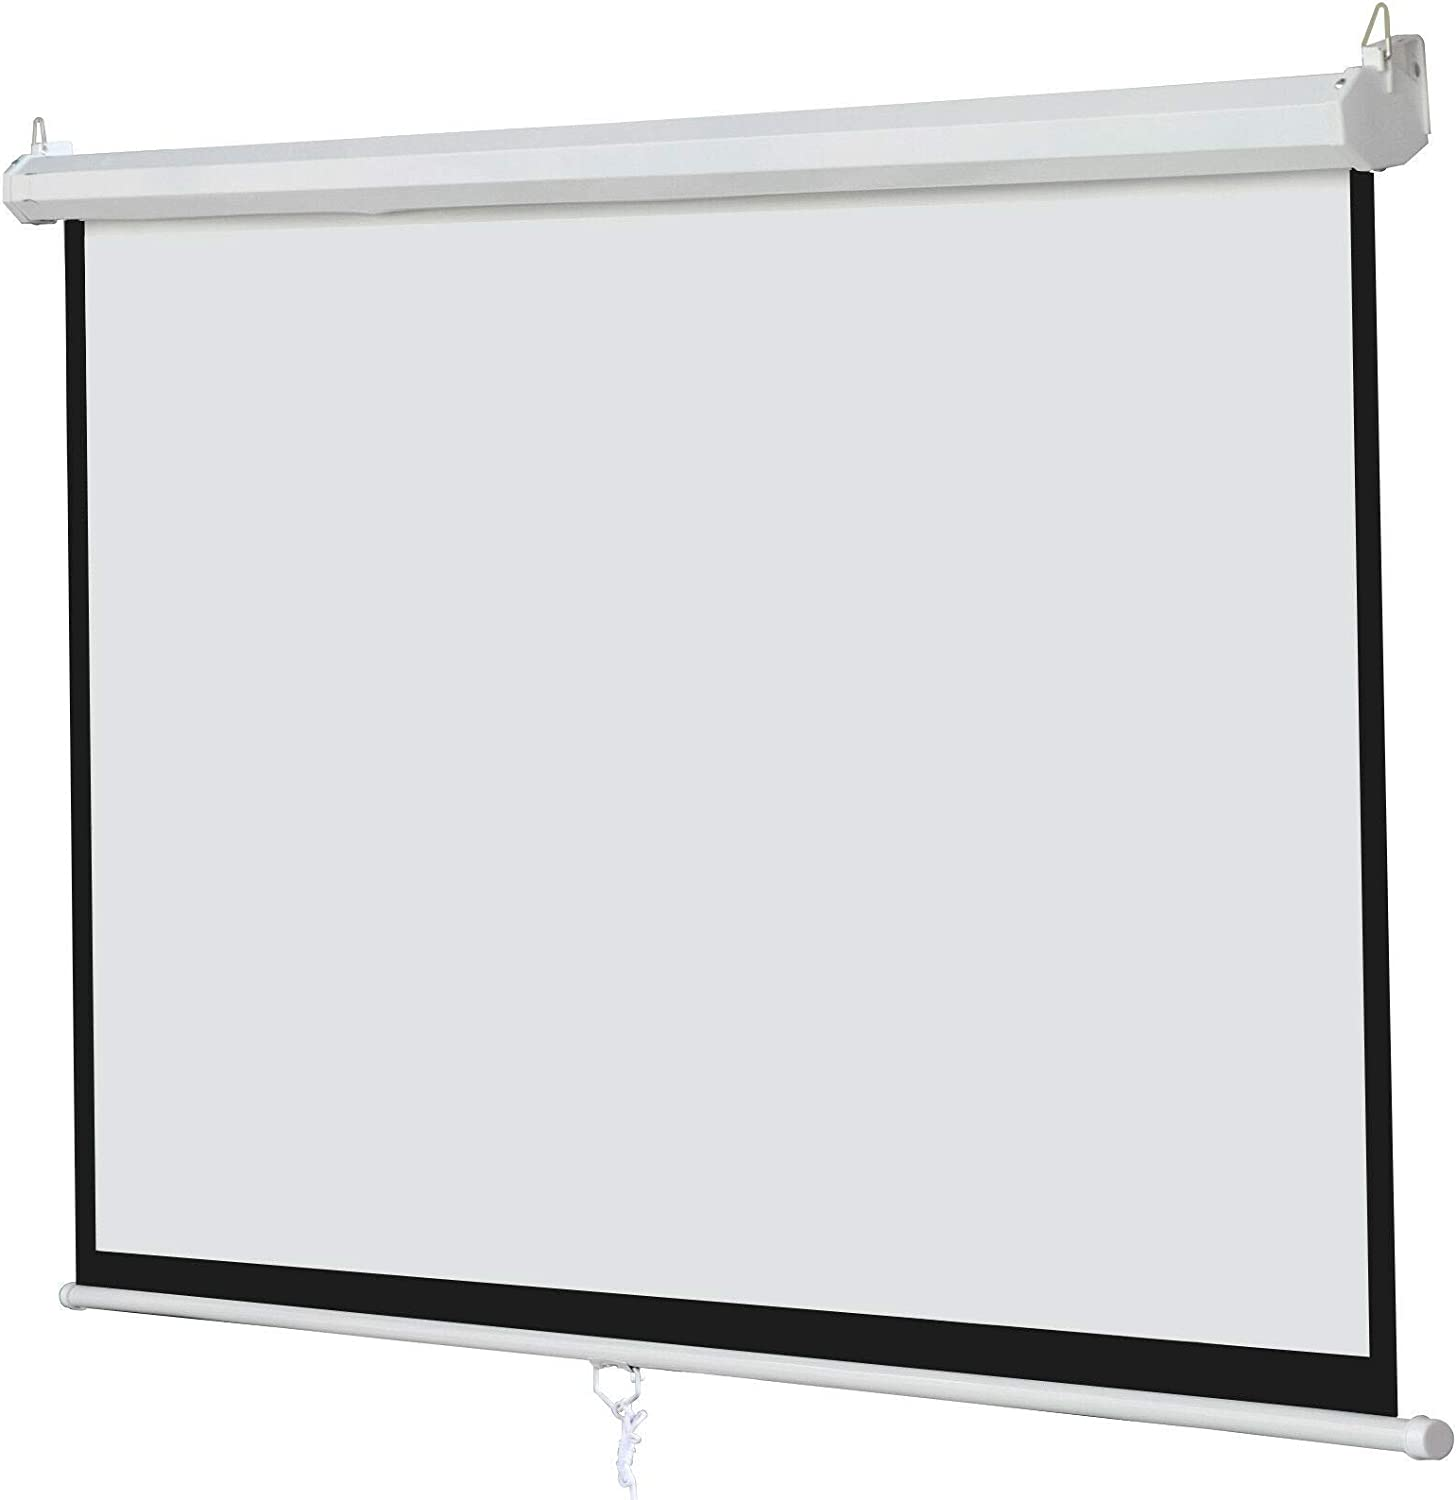 Kosoree 100 Inch 16:9 Manual Pull Down Projector Projection Screen Home Theater Movie